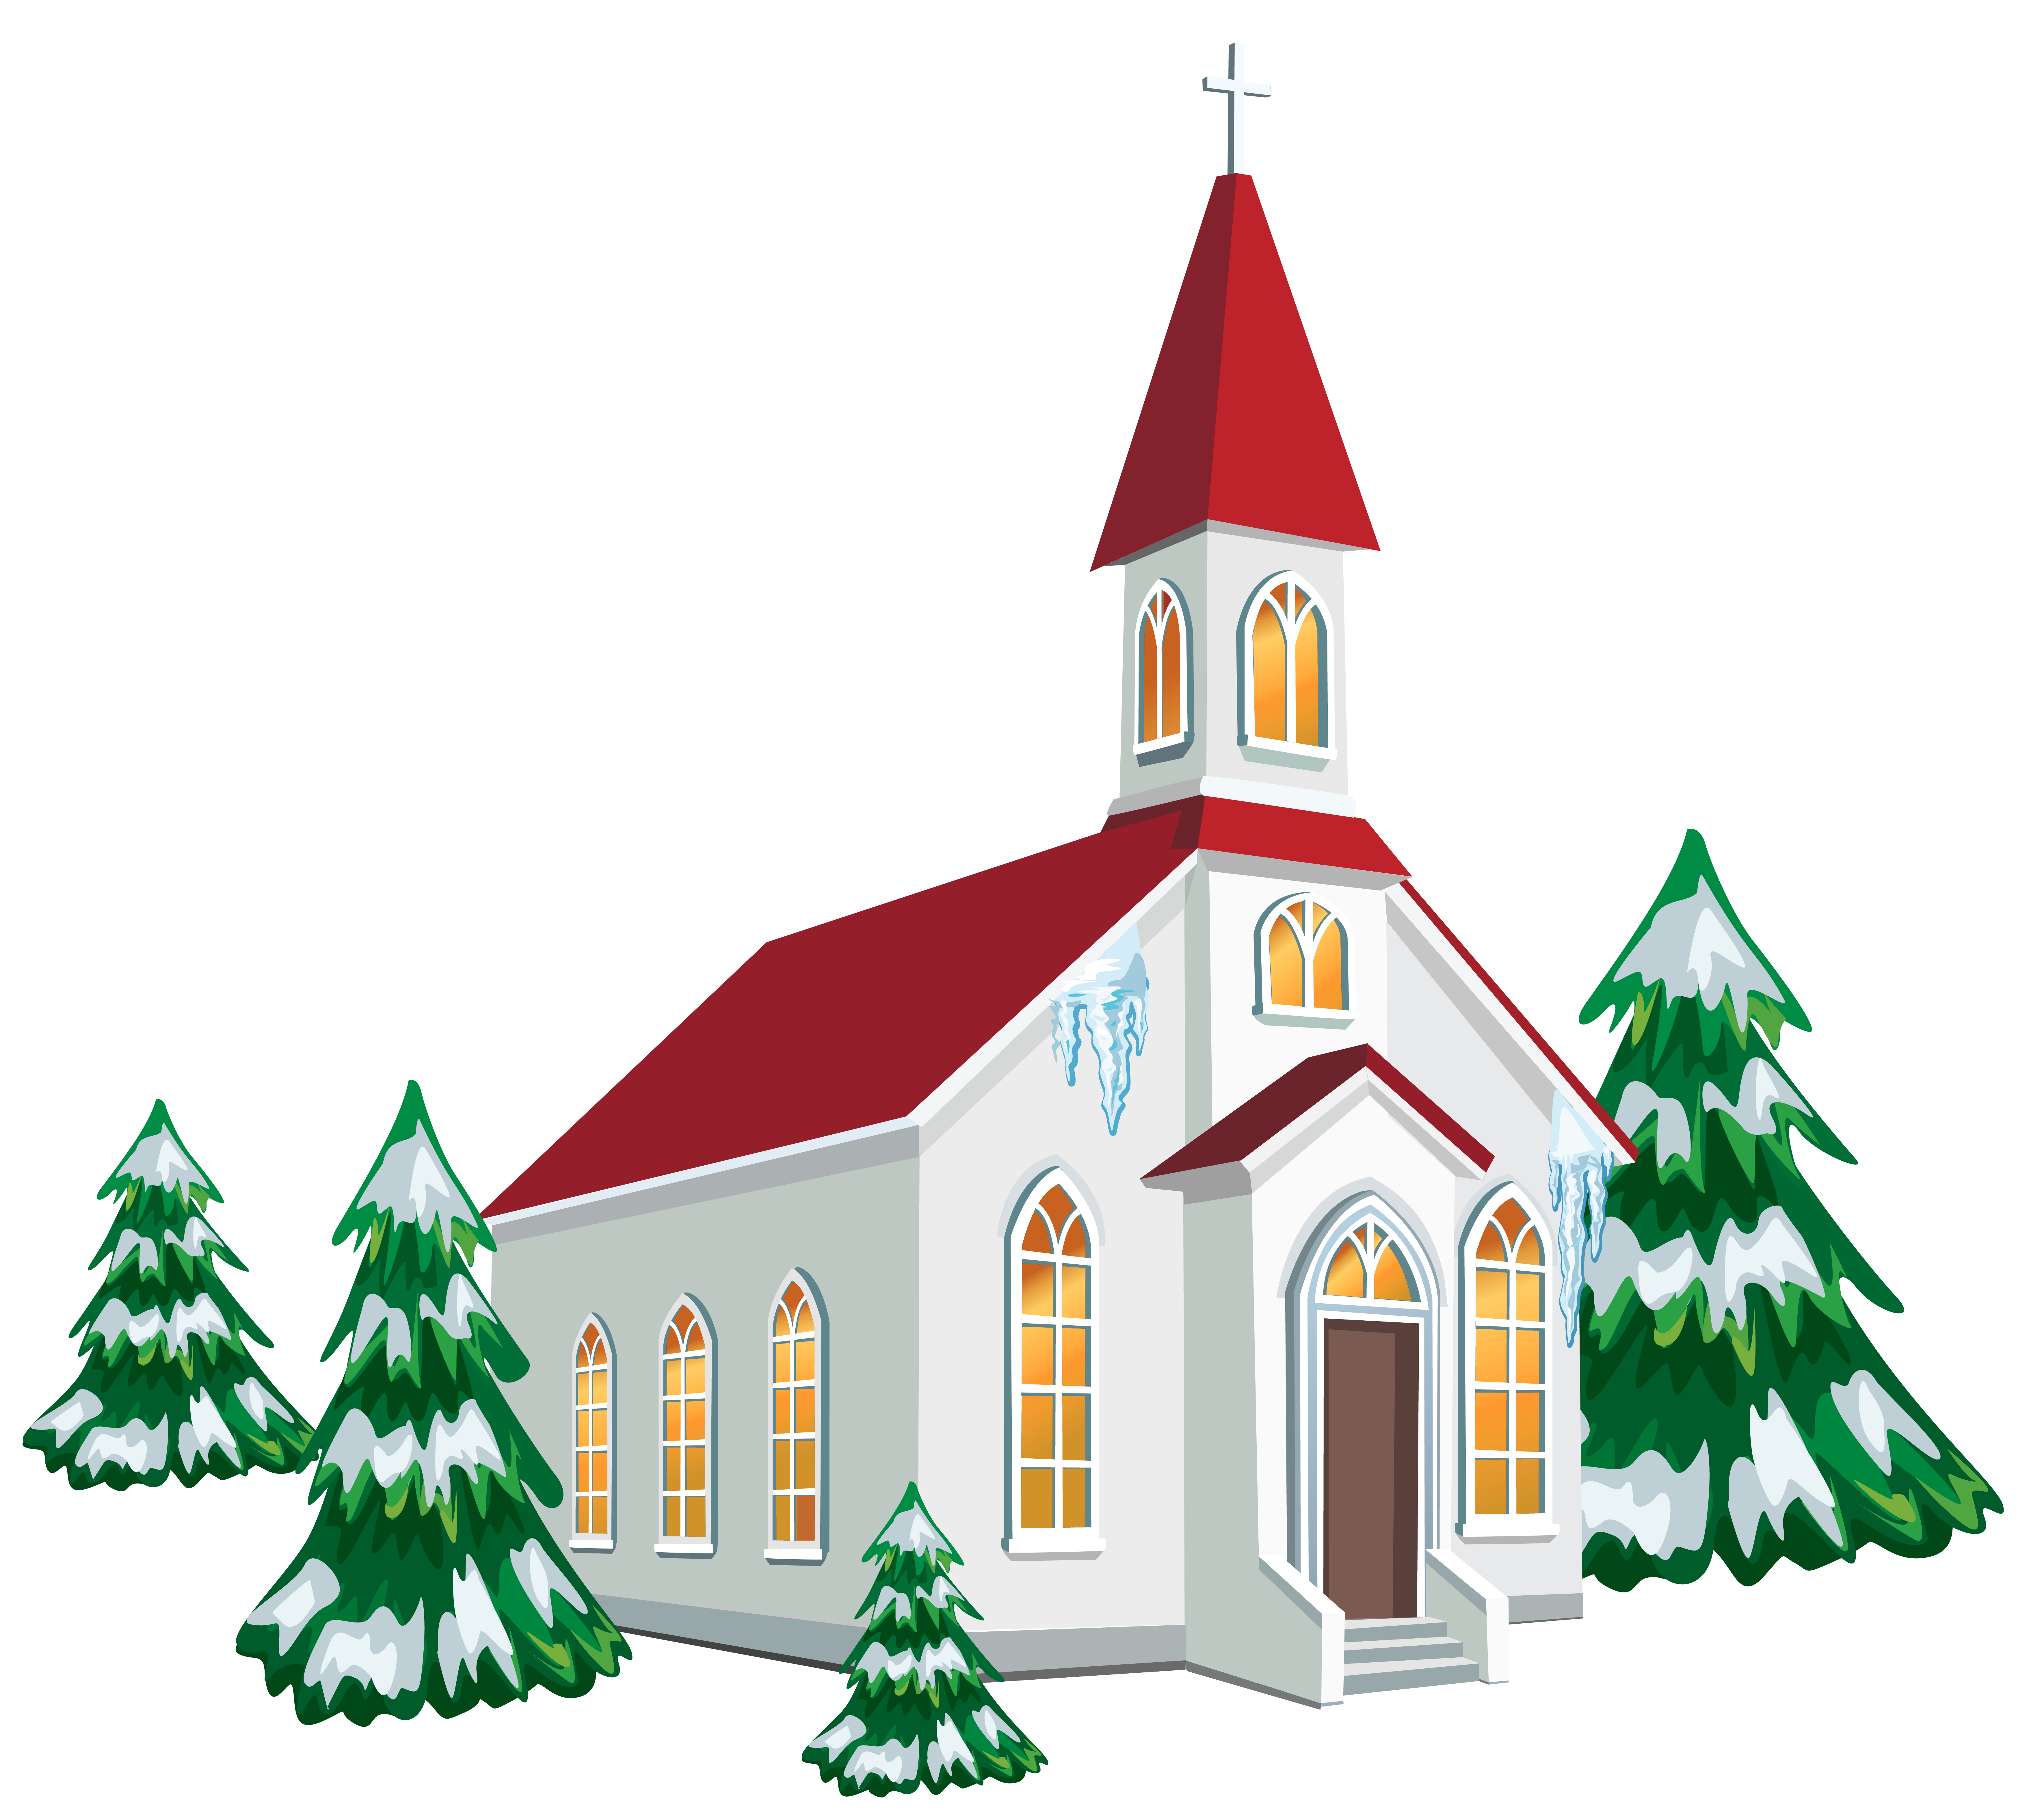 Winter Church With Snow Trees Clipart Im-Winter church with snow trees clipart image-19